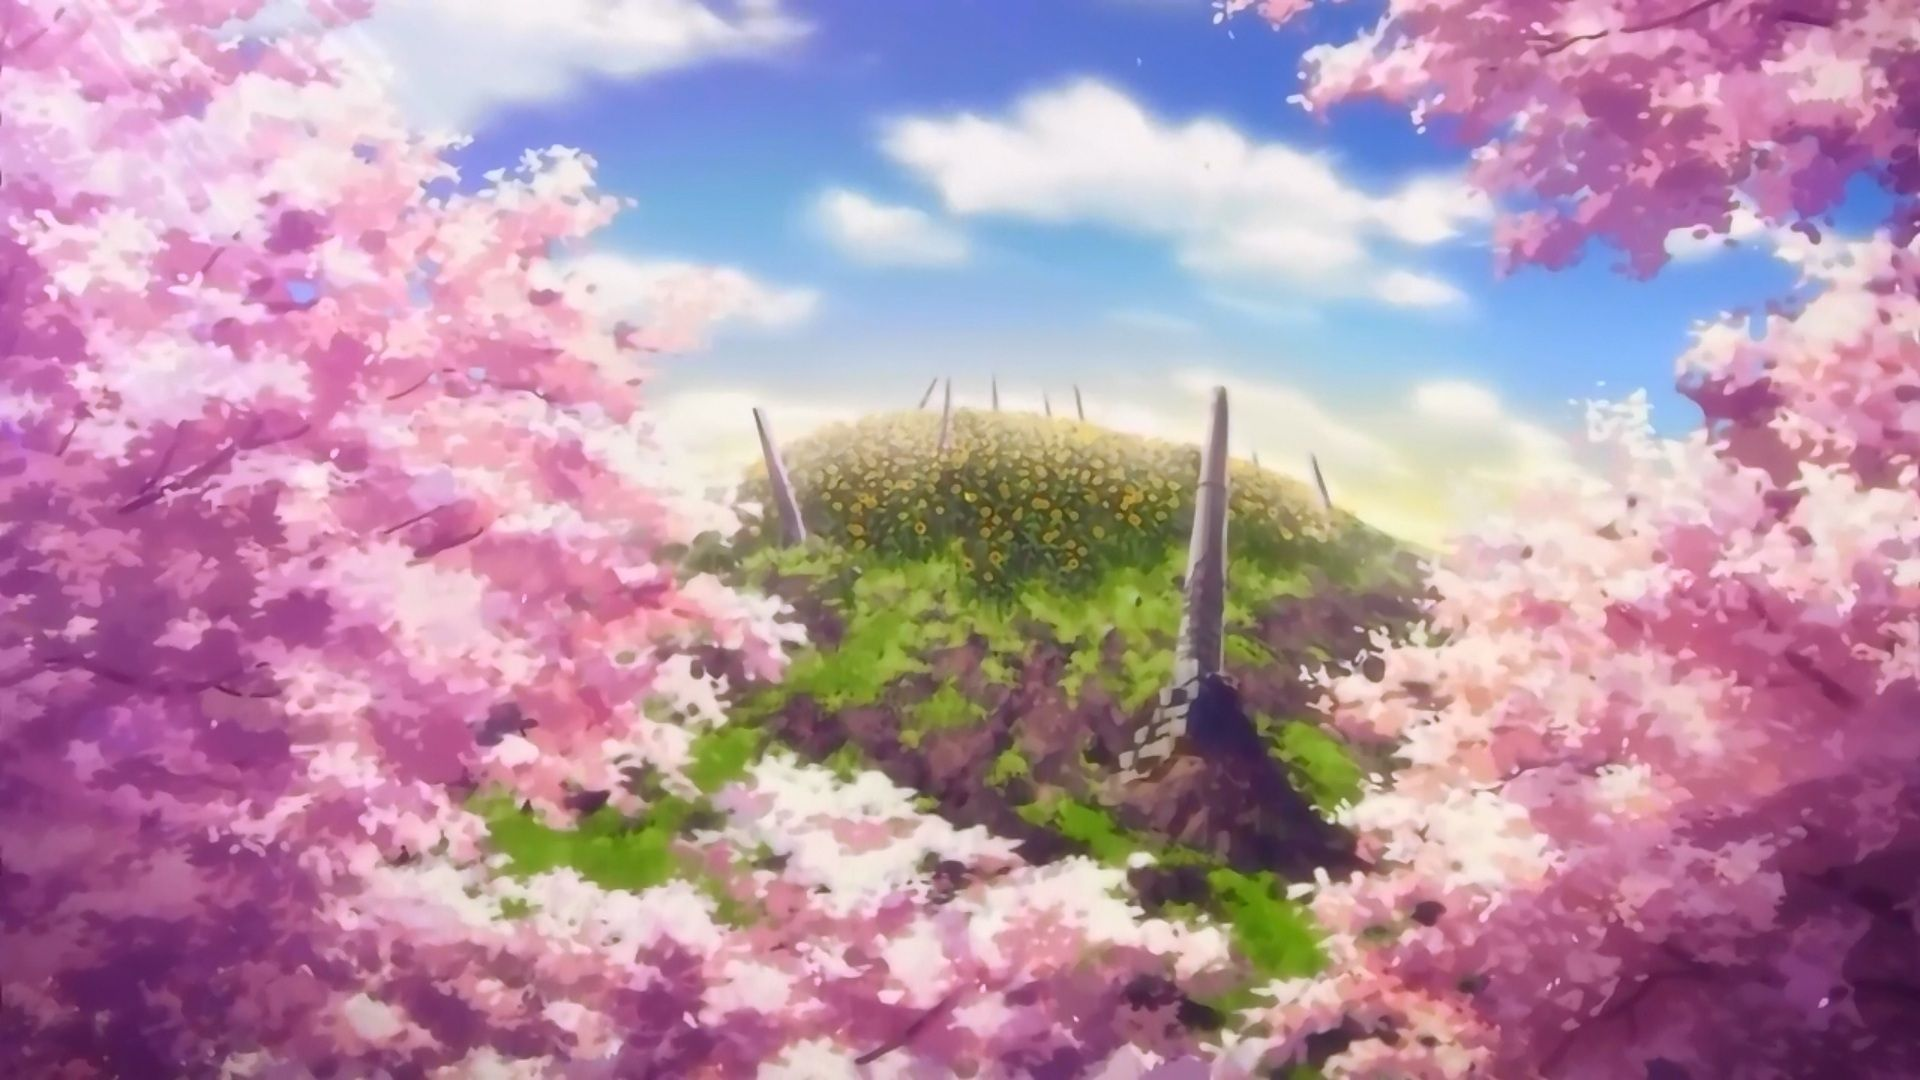 Anime Scenery wallpaper | Anime Landscape | Pinterest ...